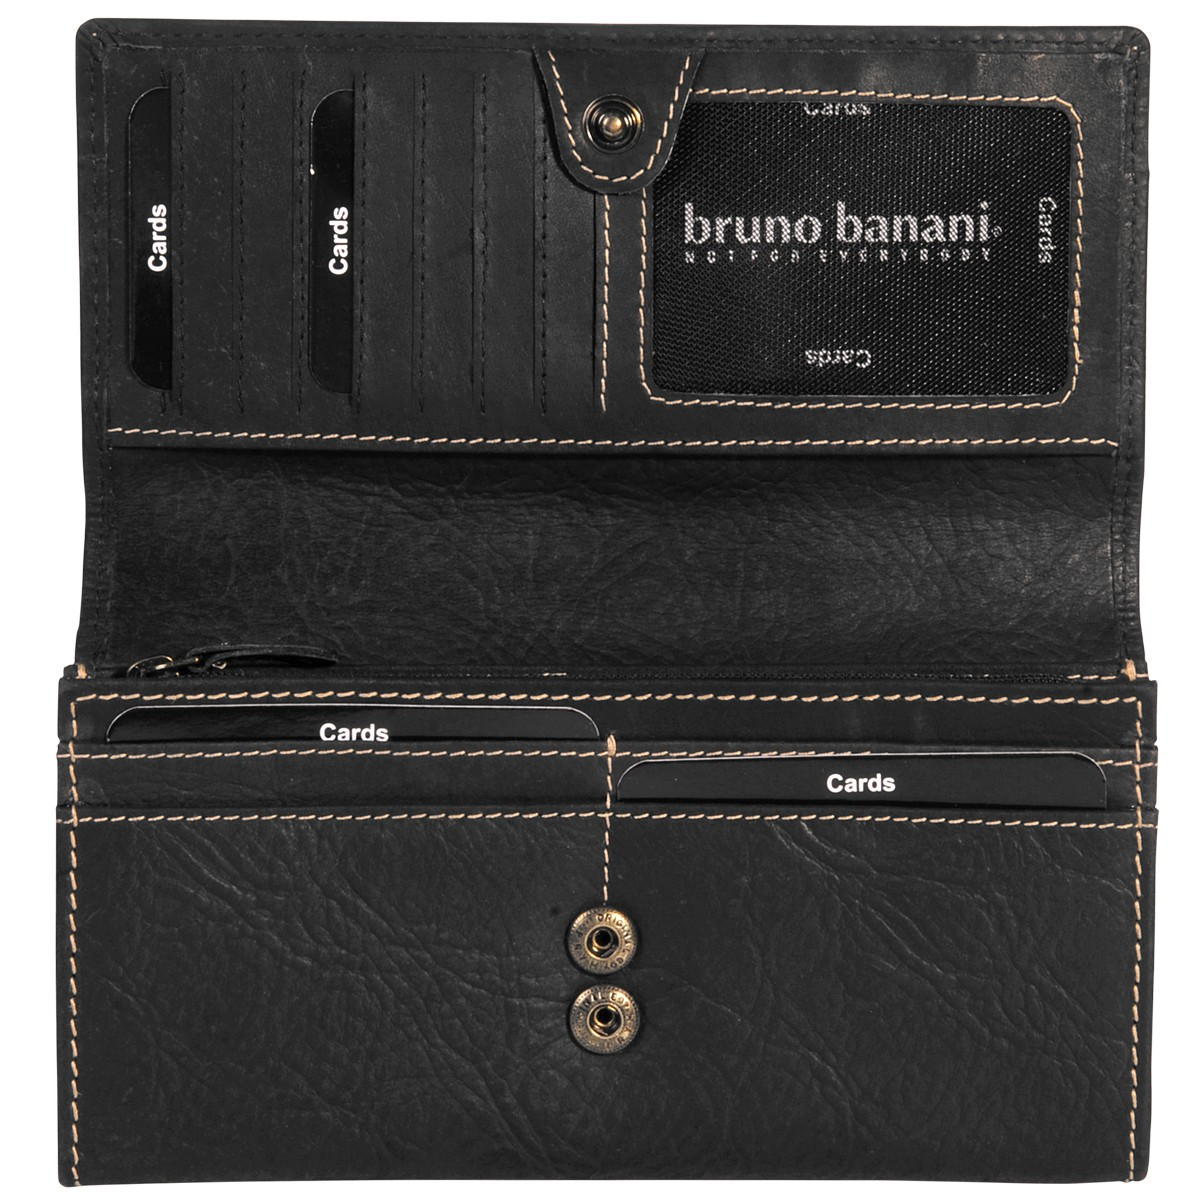 bruno banani damenb rse geldbeutel damen harlem buff. Black Bedroom Furniture Sets. Home Design Ideas